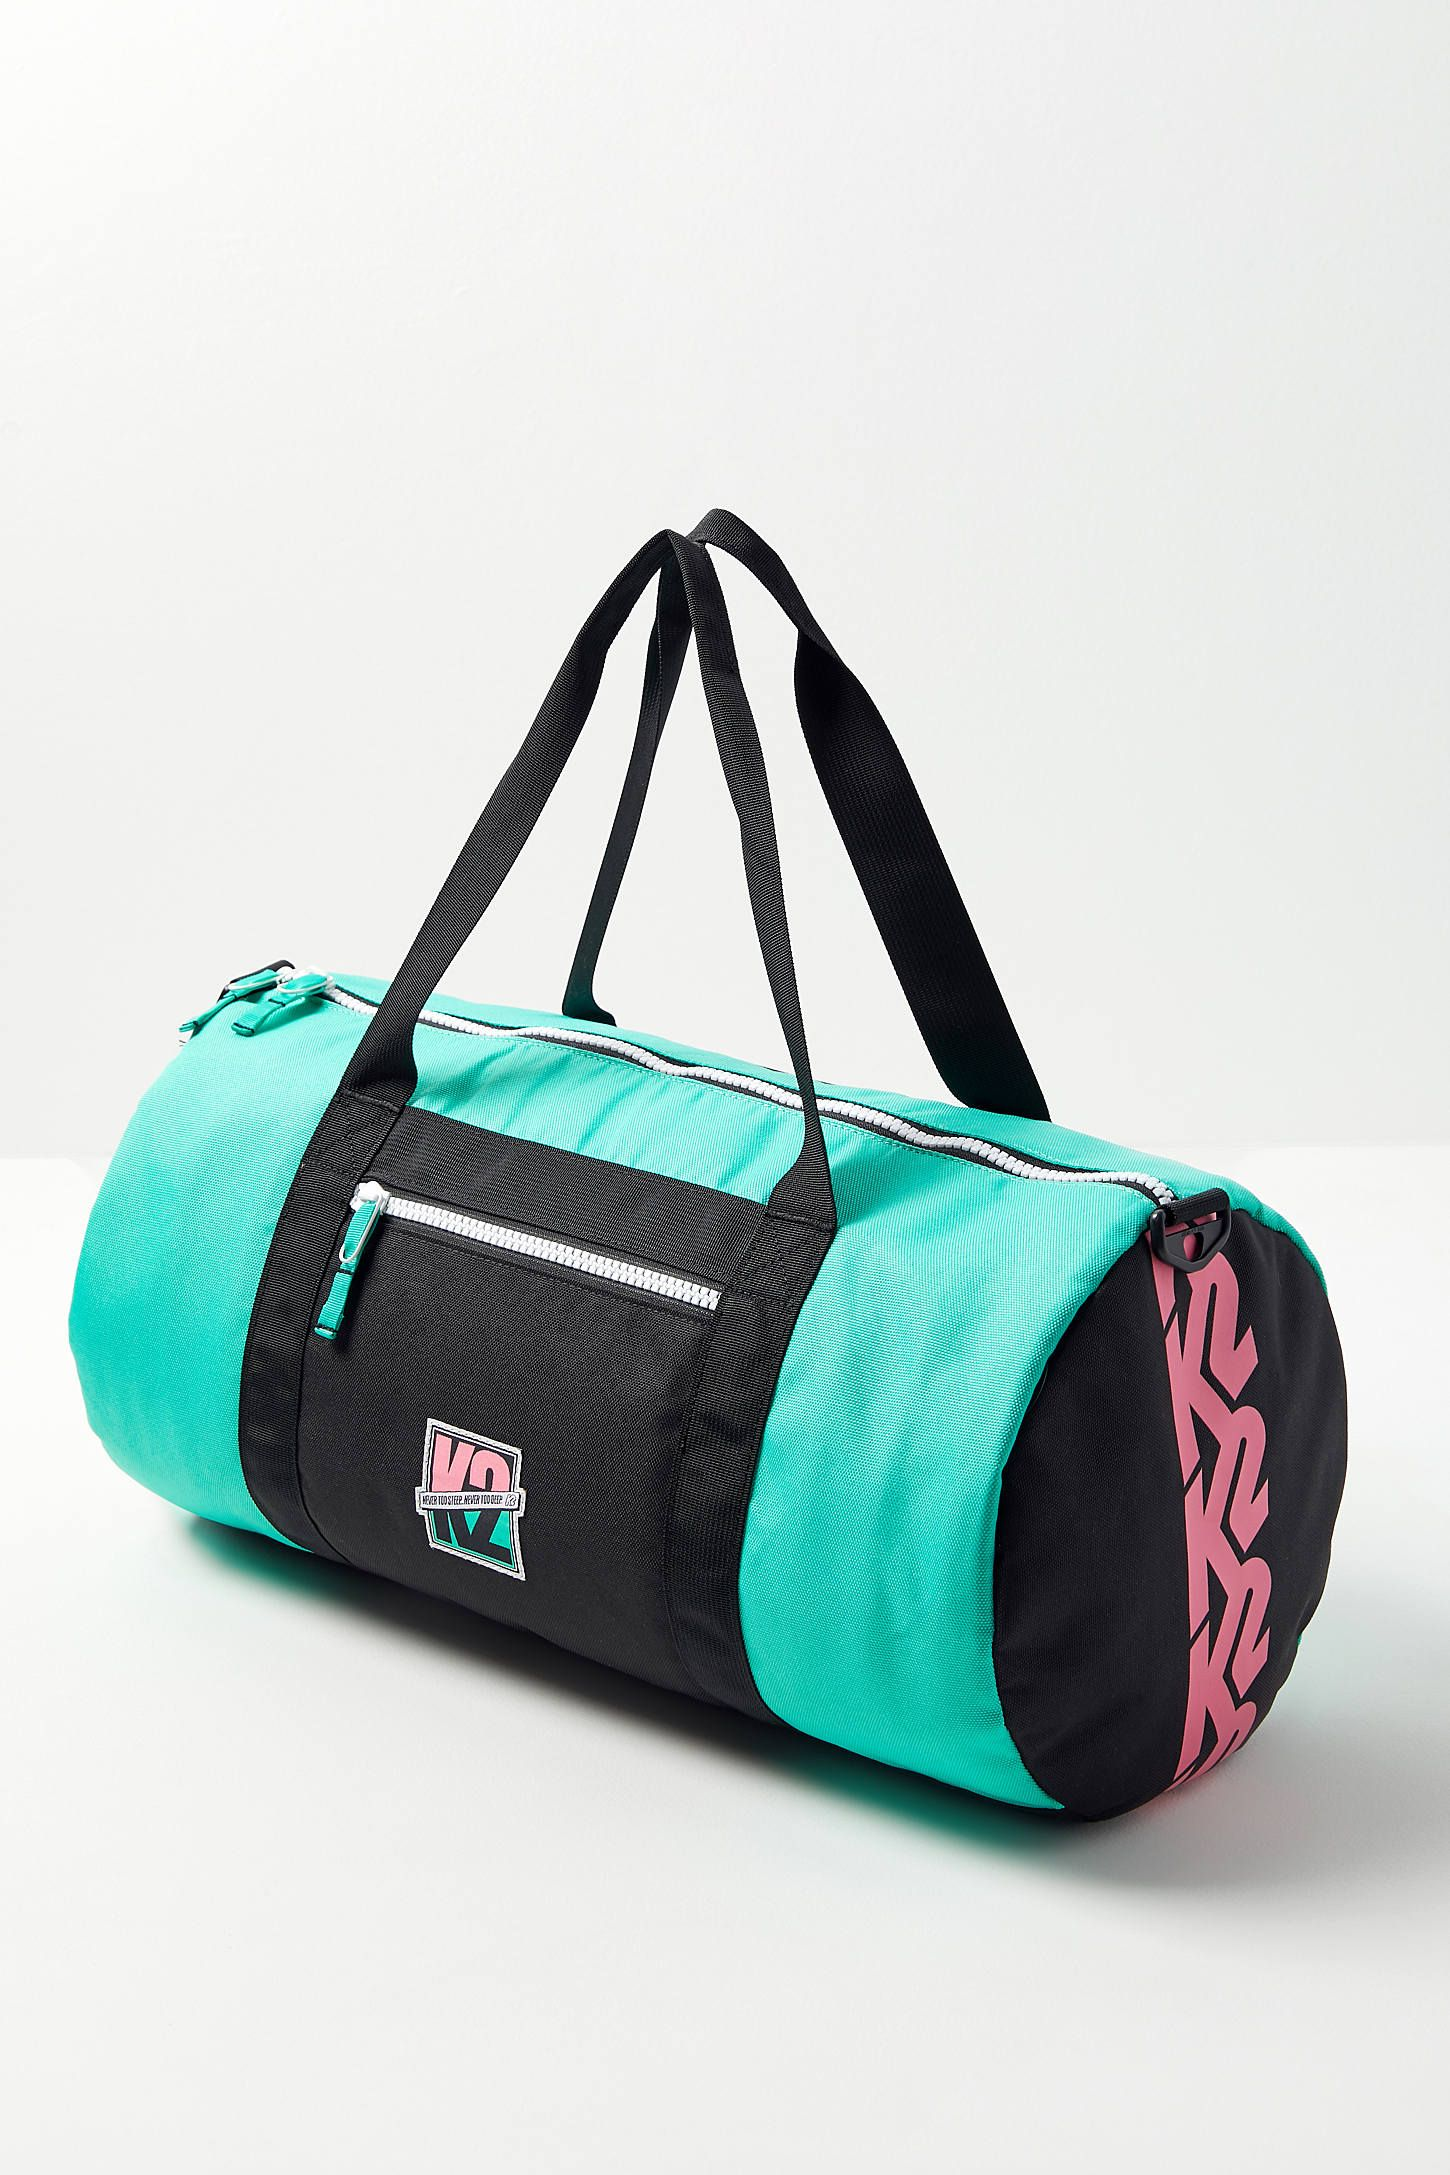 K2 UO Exclusive Duffel Bag in 2019   My Style   Duffel bag, Fashion ... b2d19d8d50